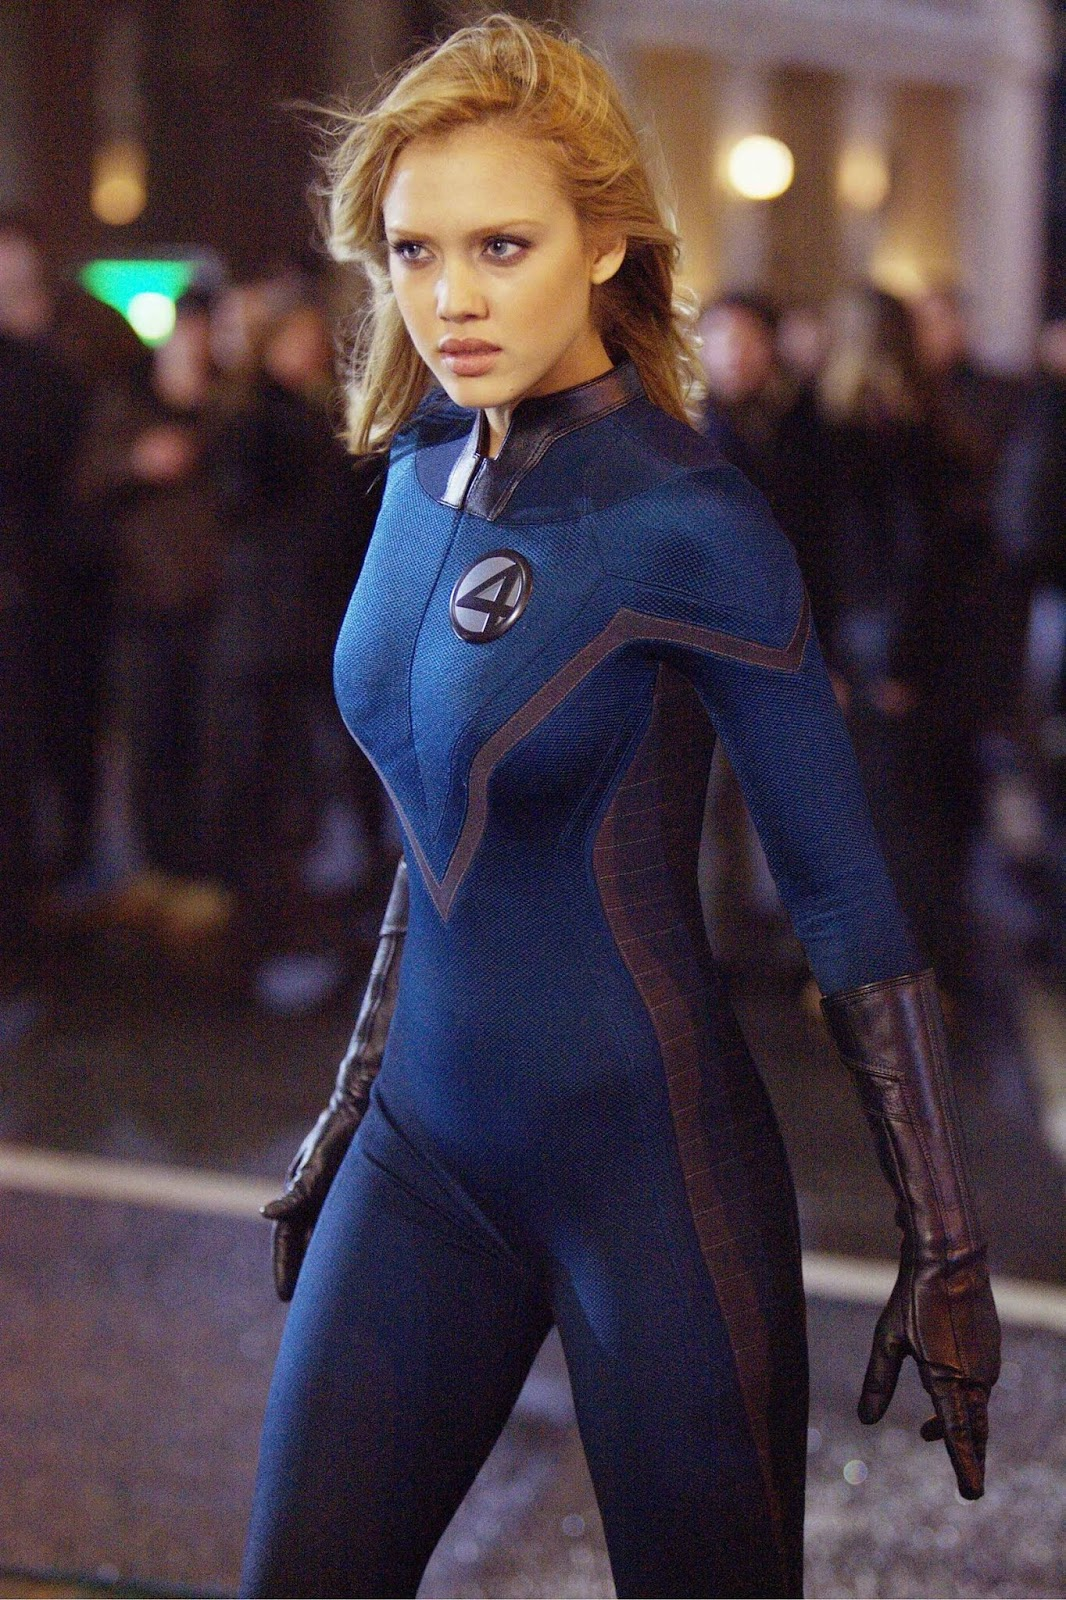 Jessica Alba as Sue Storm in Fantastic Four (2005)